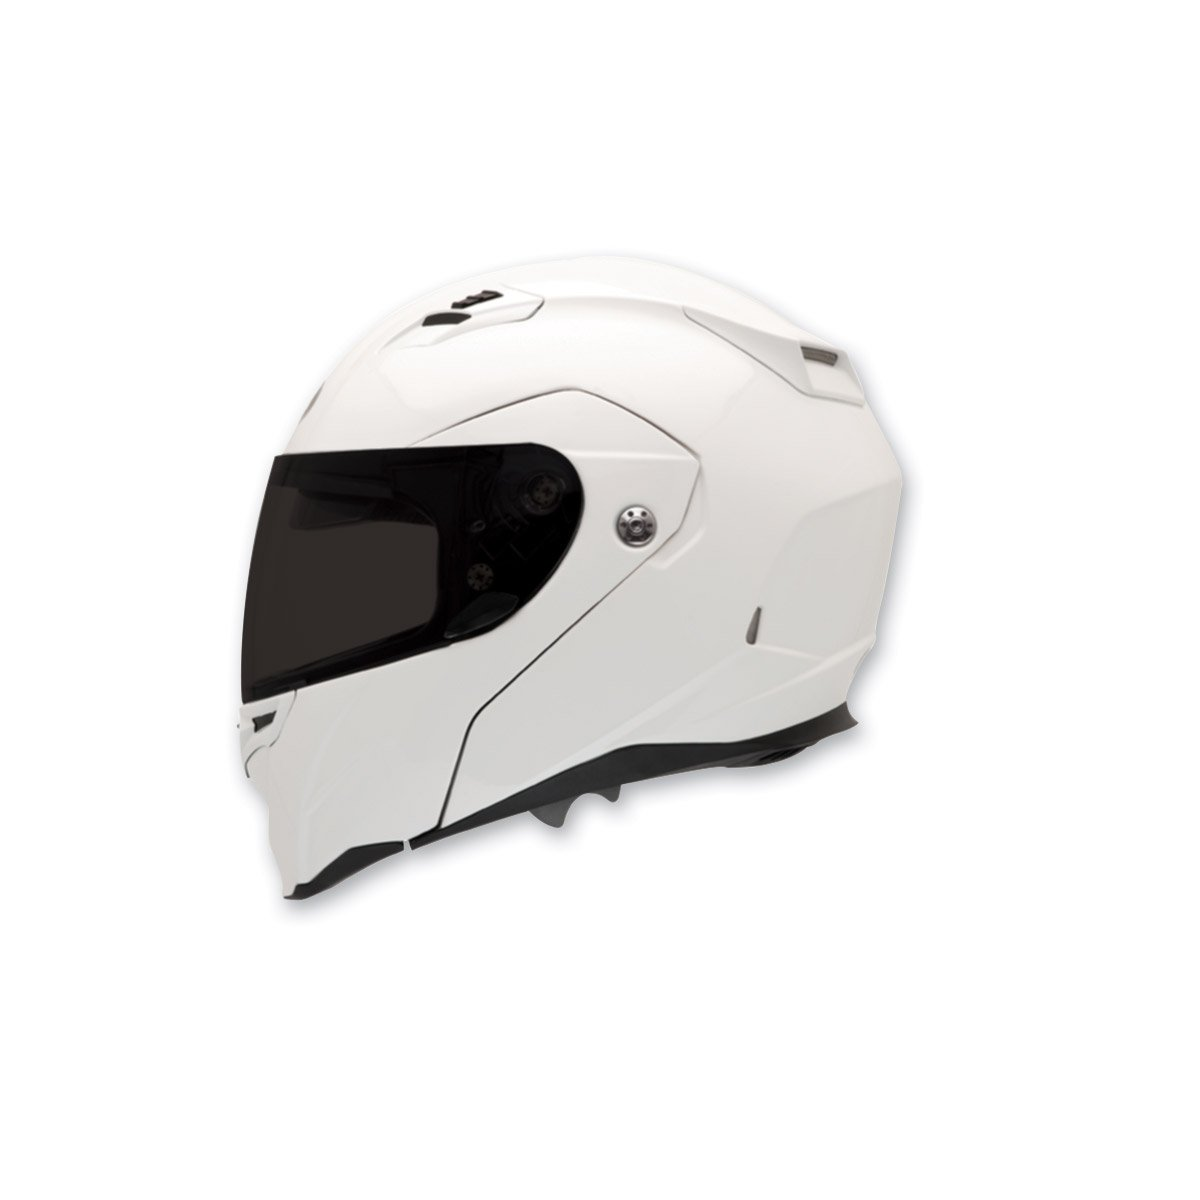 Amazon.com: Bell Unisex-Adult Revolver Evo Modular Motorcycle Helmet(White, X-Large), 1 Pack (Non-Current Graphic): Automotive